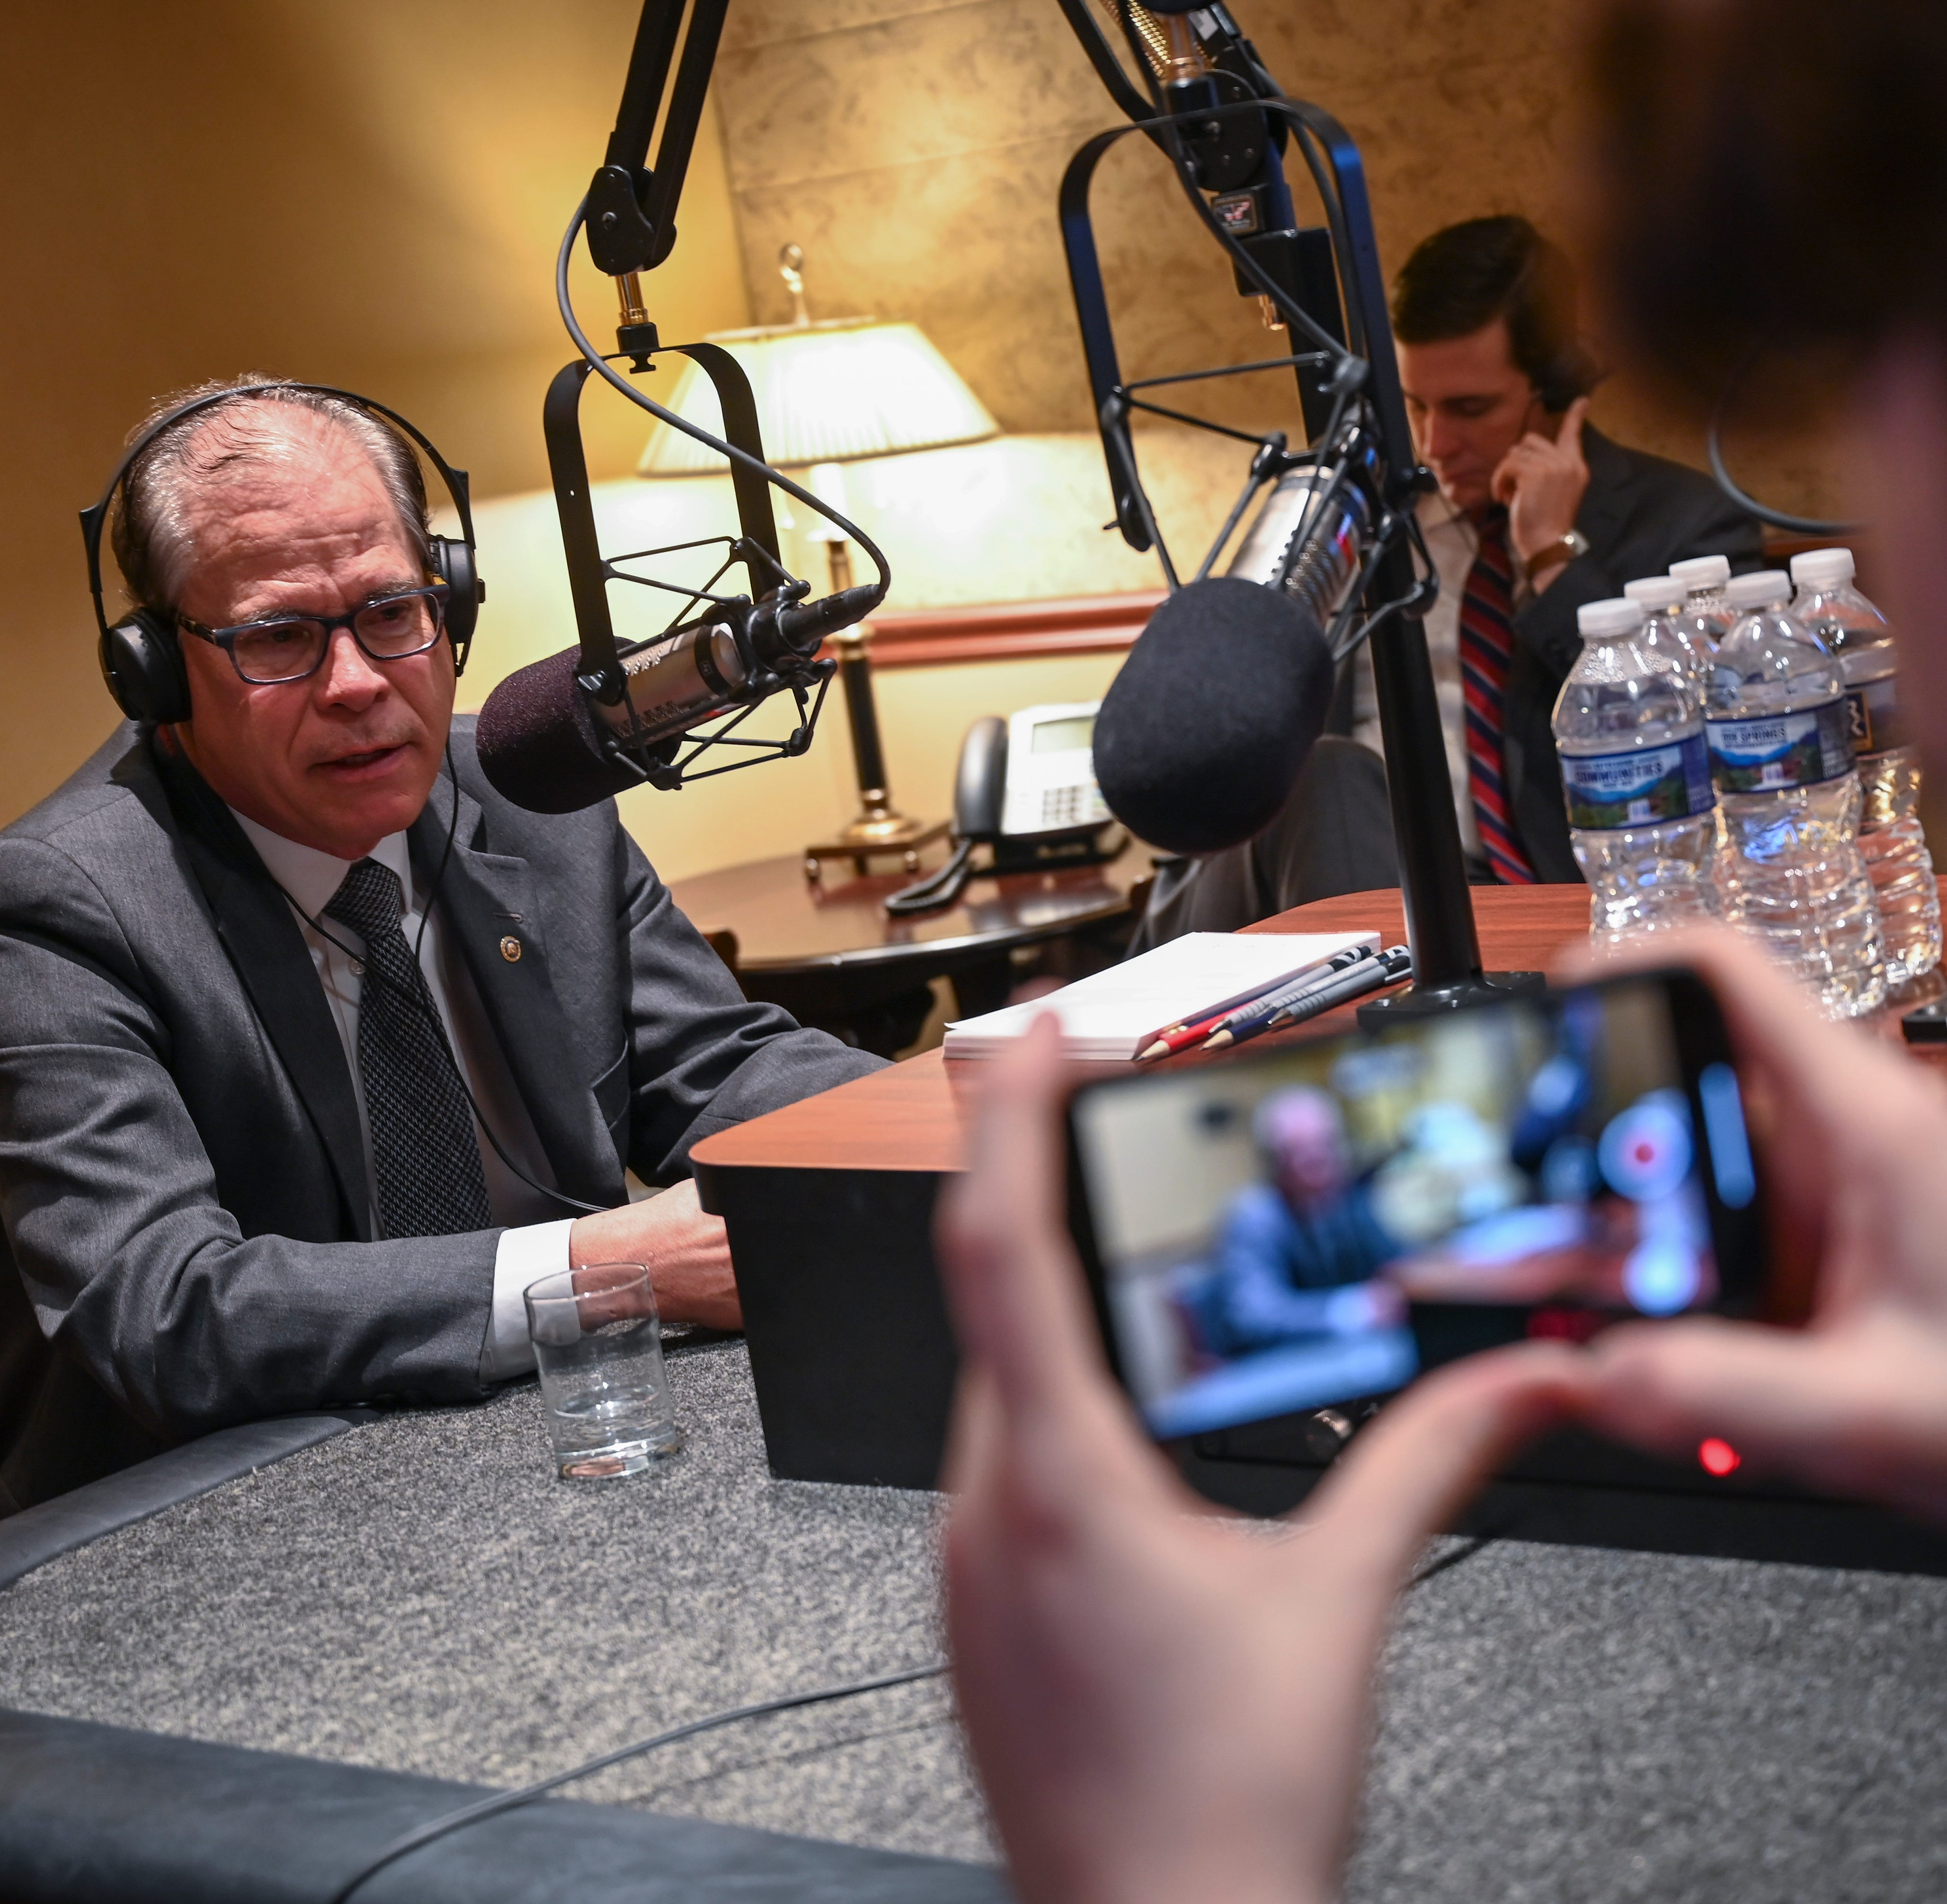 Senator Mike Braun, R-Indiana, on the radio live during early morning radio calls speaking to WOWO South Bend and also with Indianapolis WIBC's Tony Katz from the Senate Recording Studios with Braun's chief of staff Josh Kelley listening on headphones while Zach Riddle, Braun's deputy communication director records the conversations.